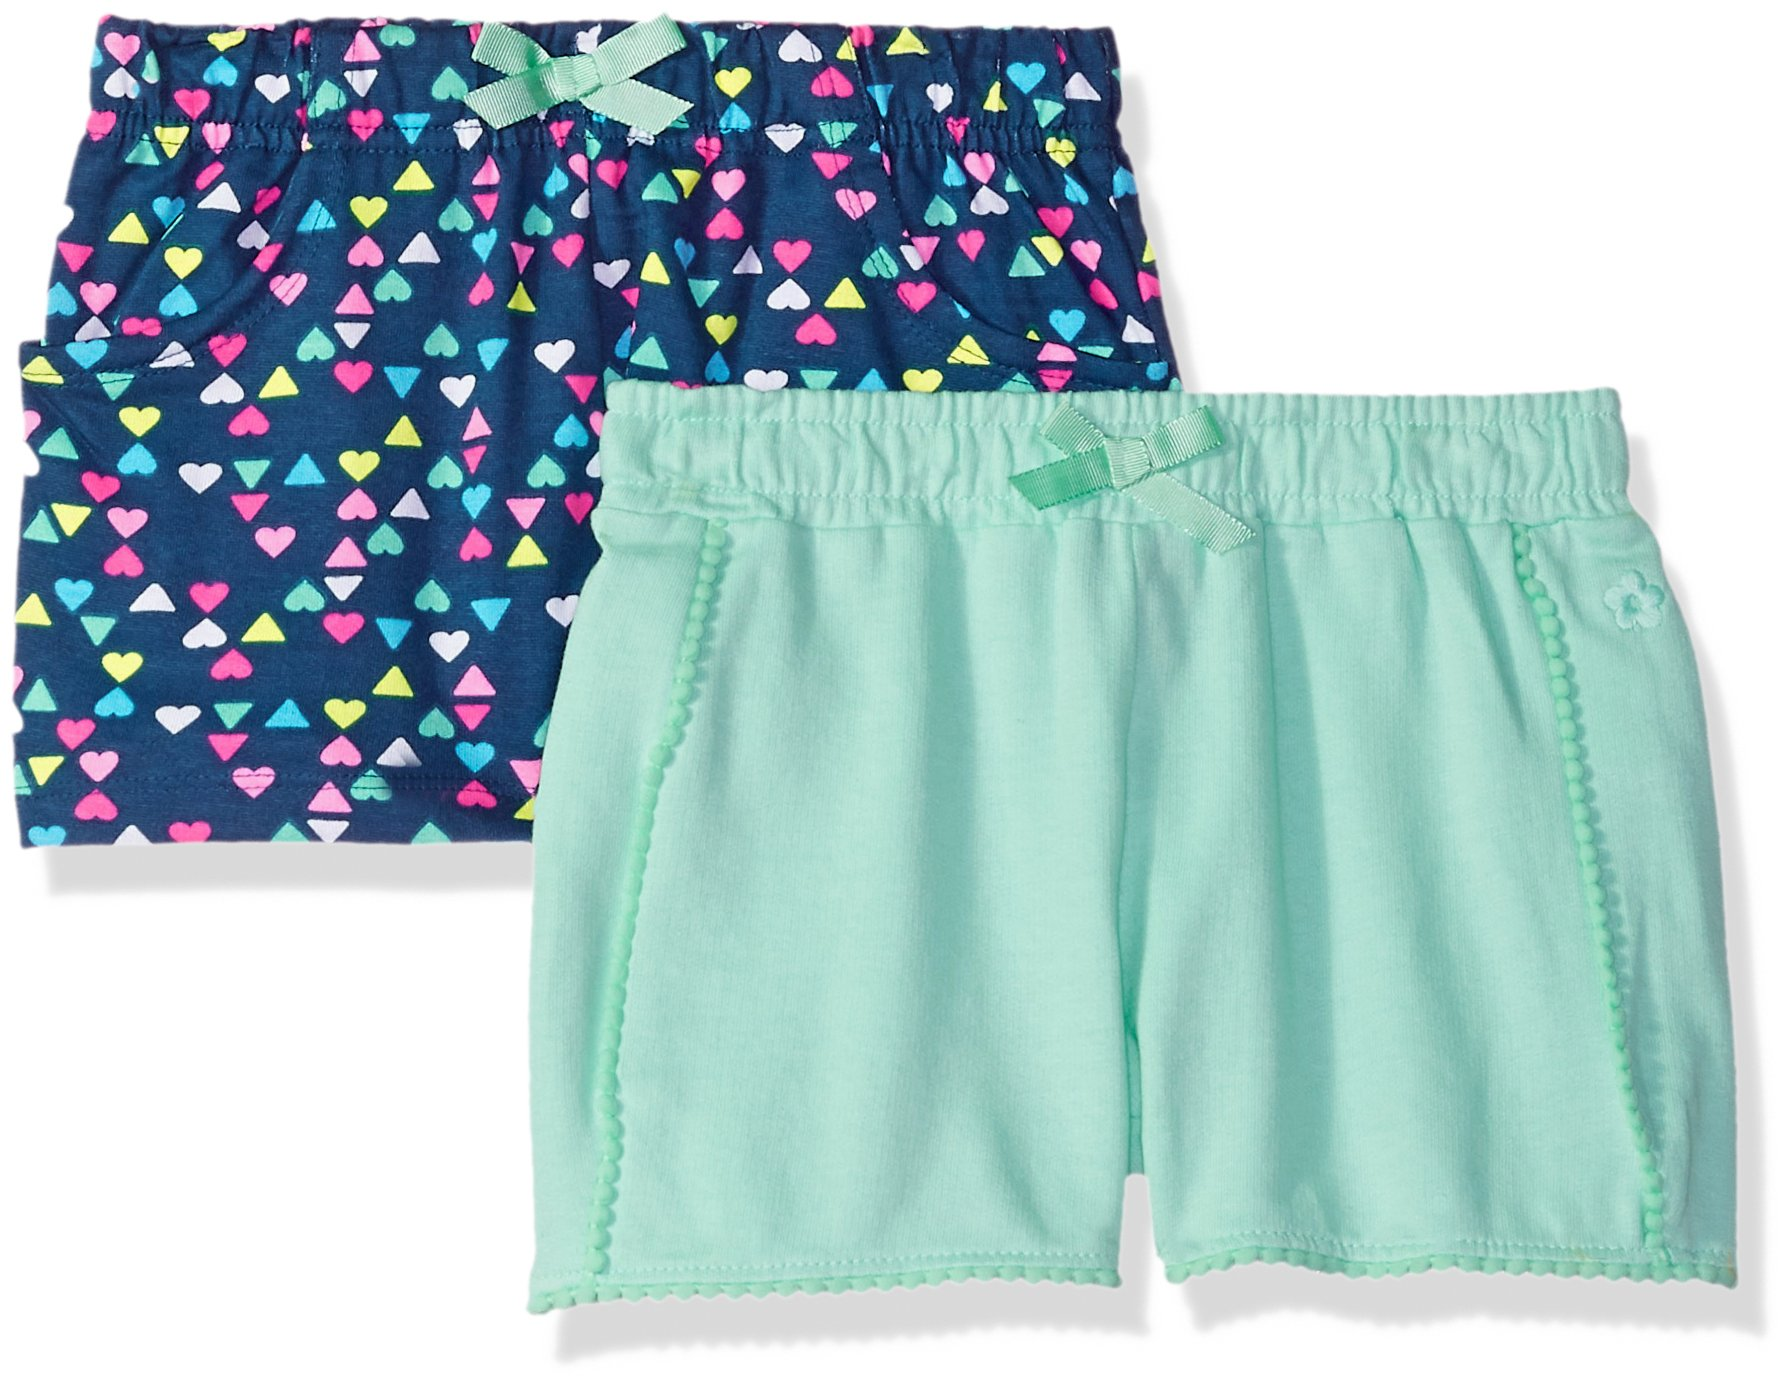 Limited Too Big Girls' 2 Pack Short, Mini Hearts with Solid Mint Multi Print, 7/8